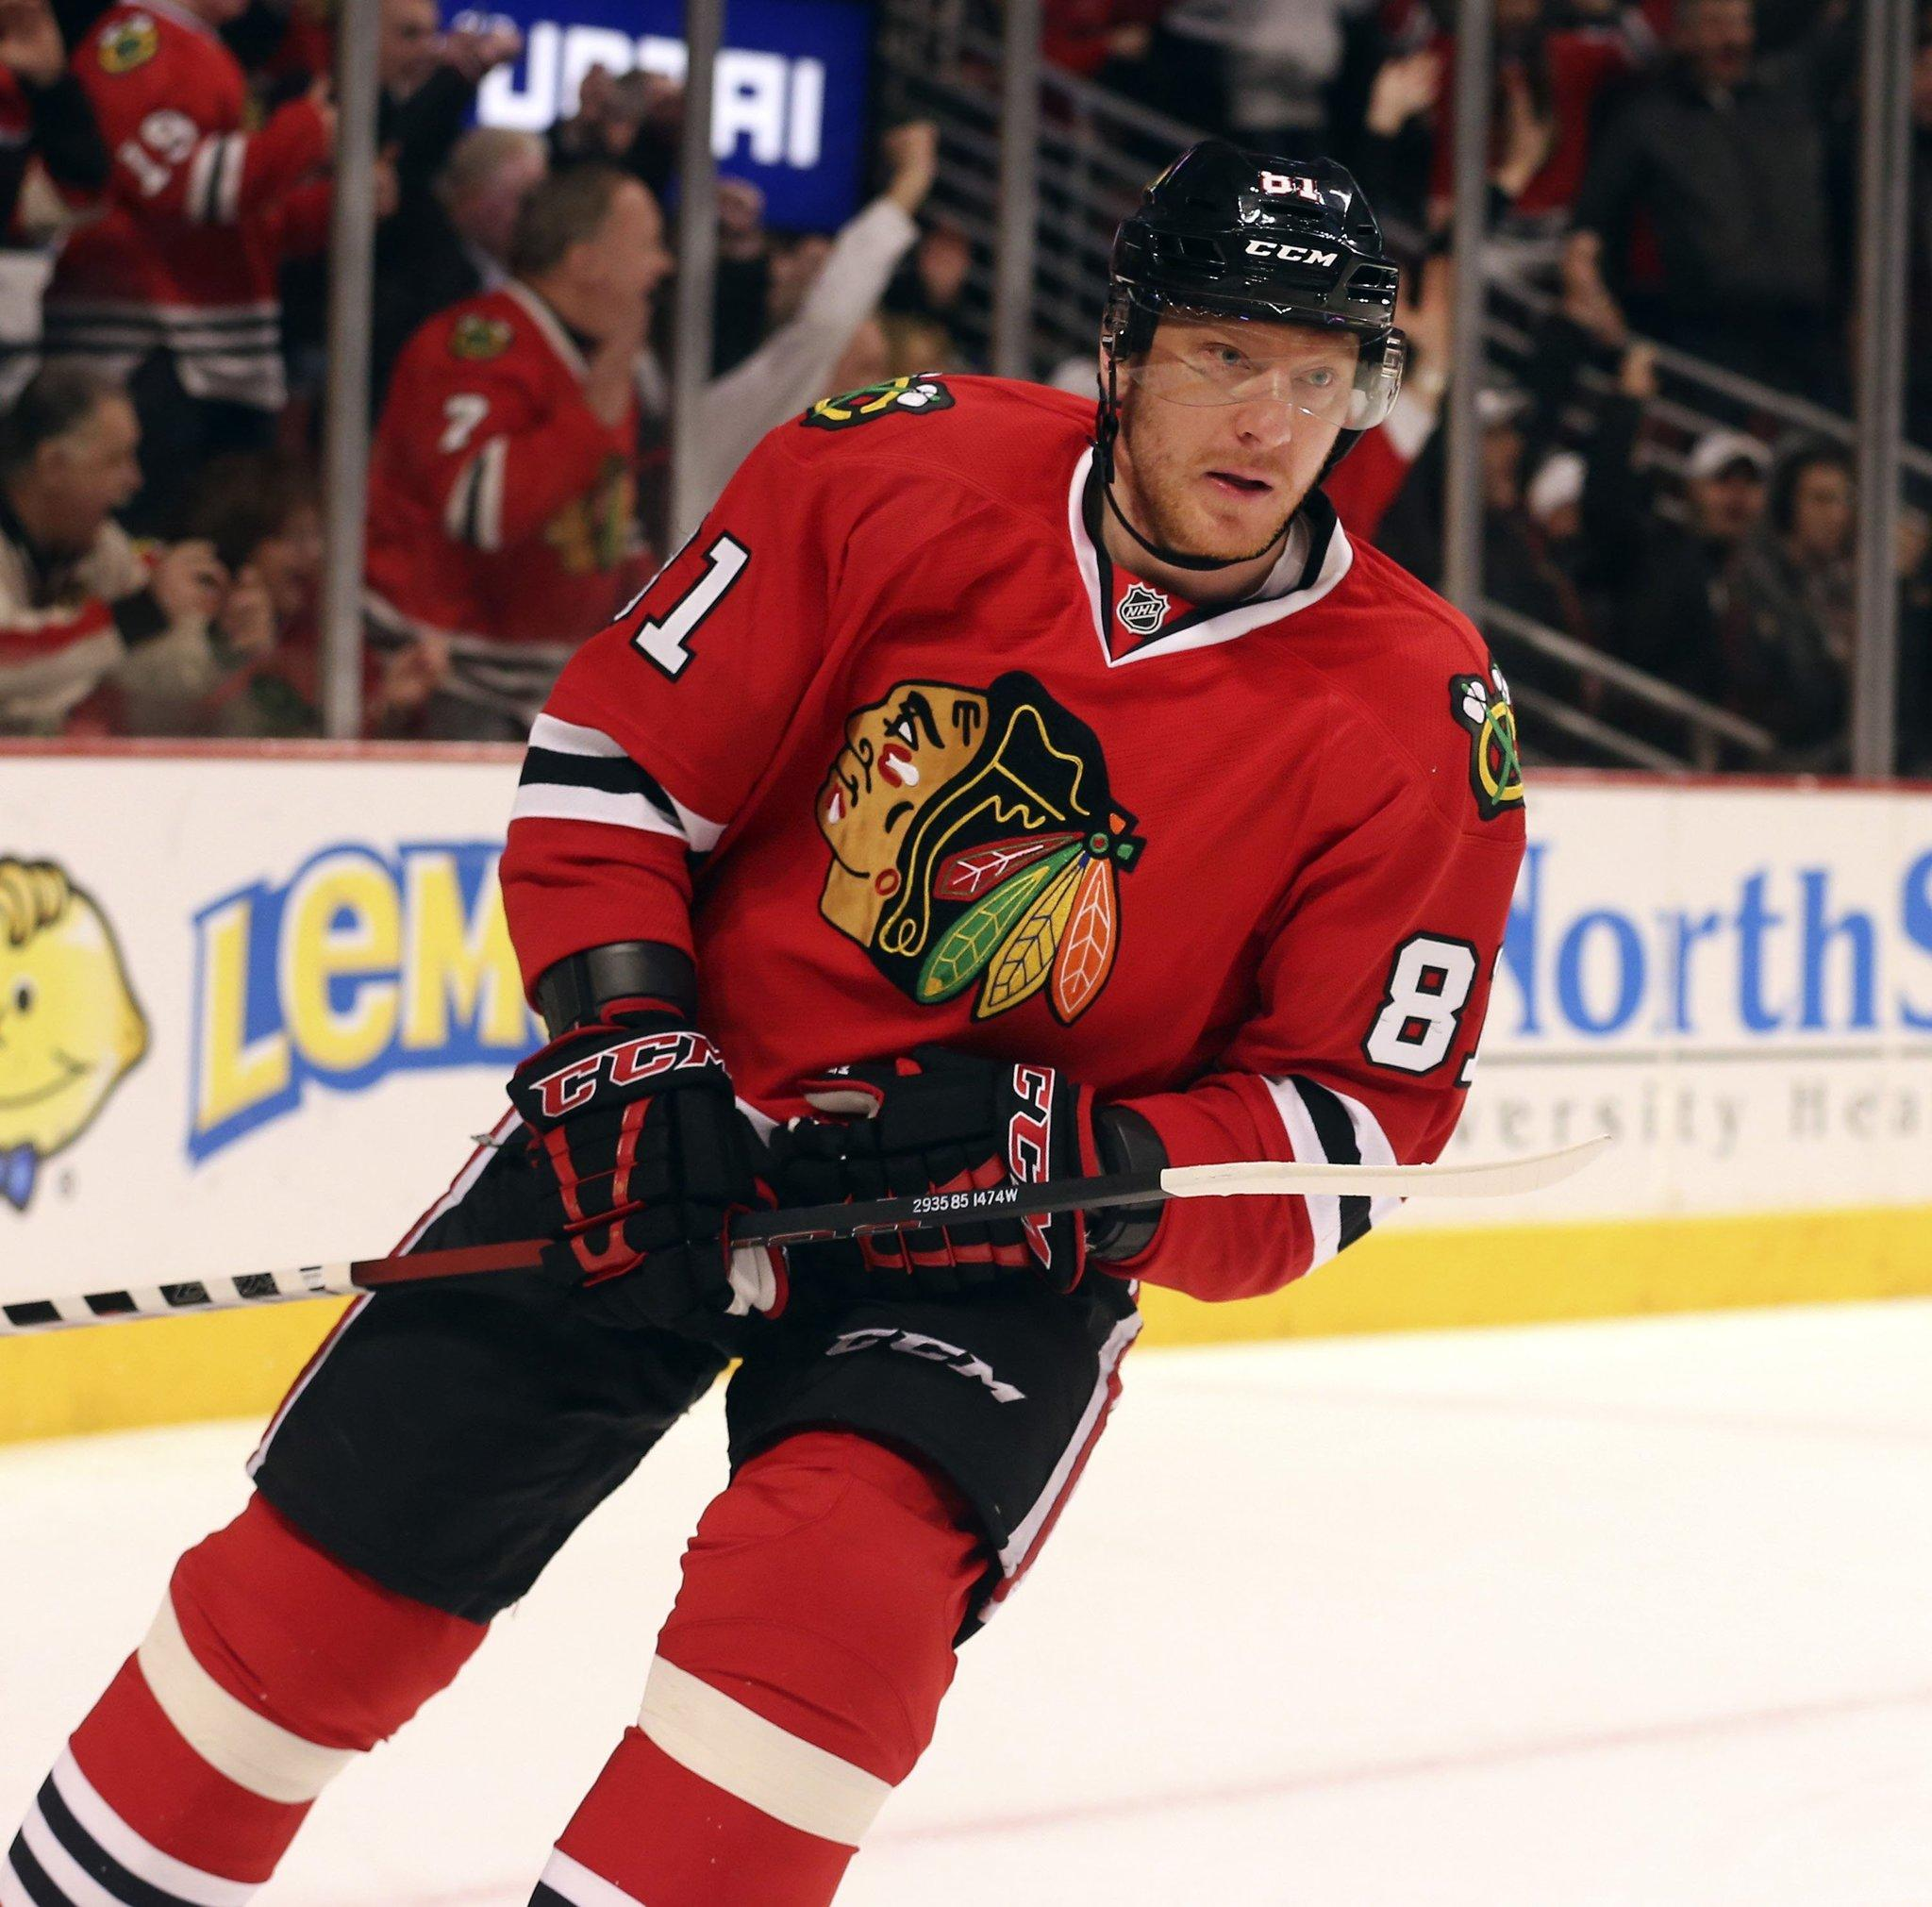 Blackhawks right wing Marian Hossa is expected to play Monday vs. the Kings.